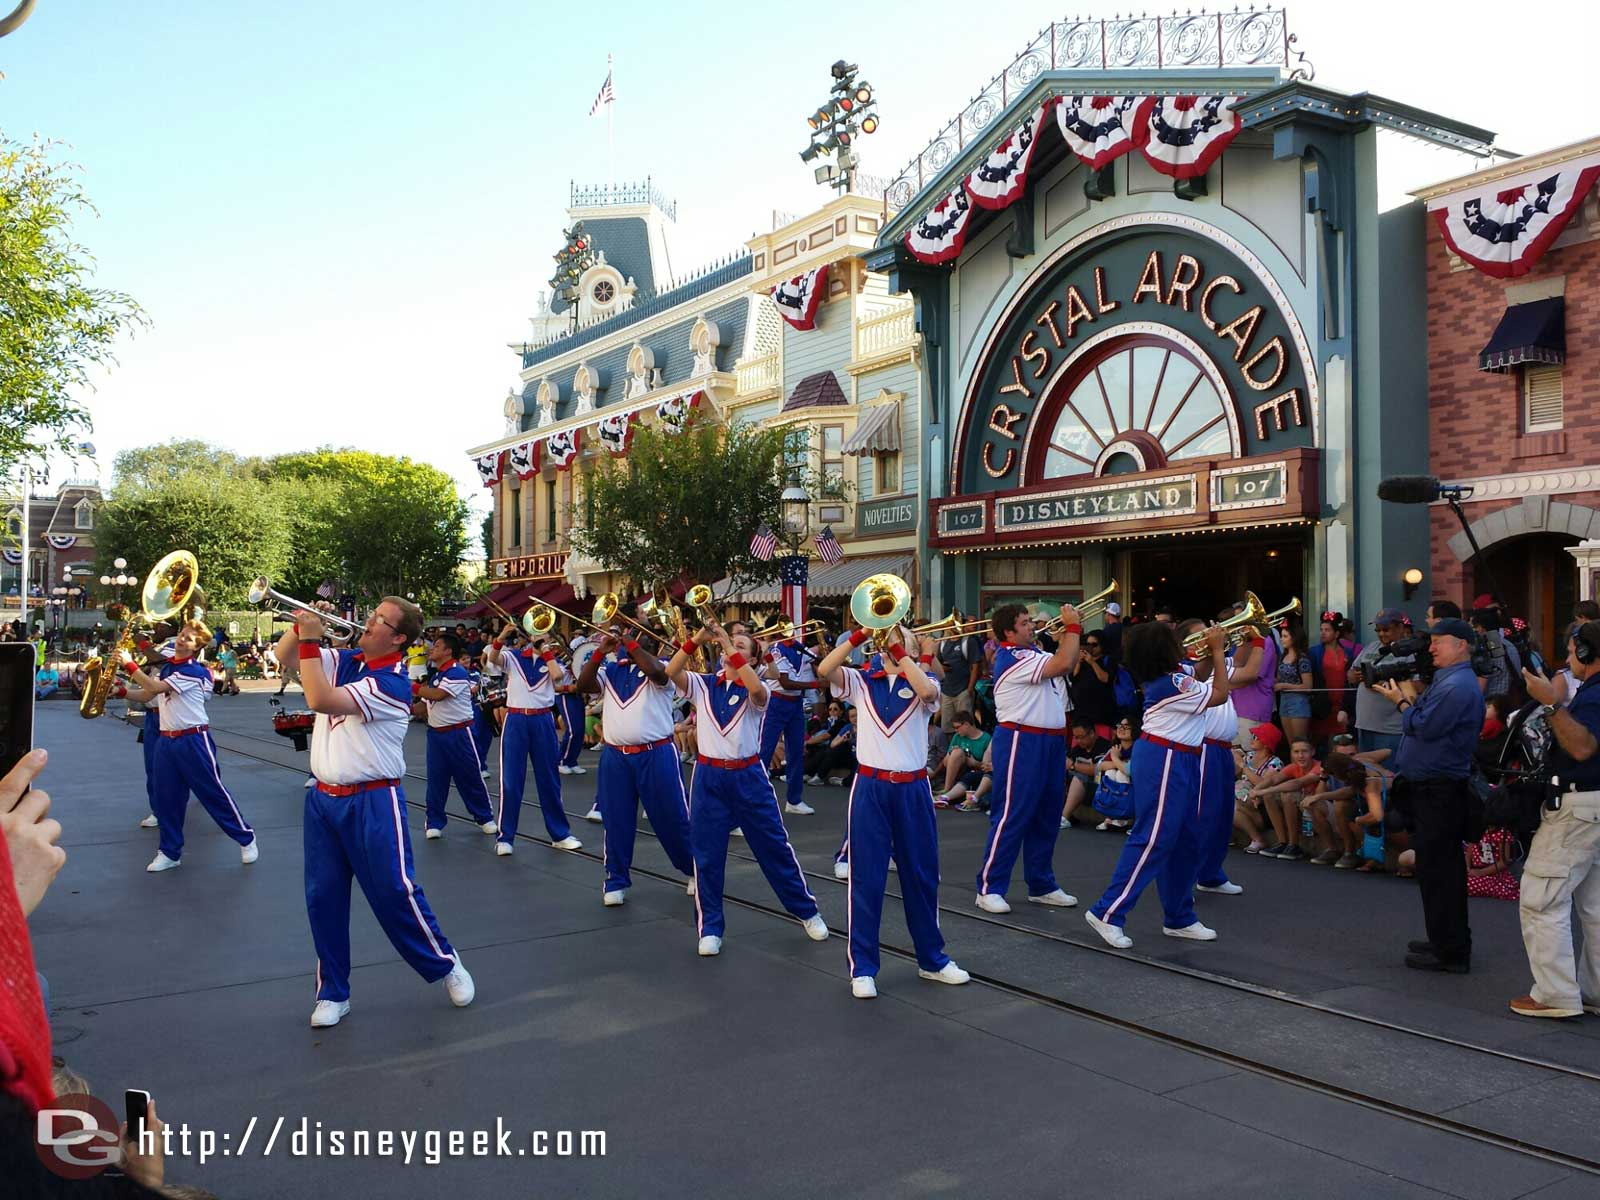 #Disneyland 2014 All-American College Band performing on Main Street USA